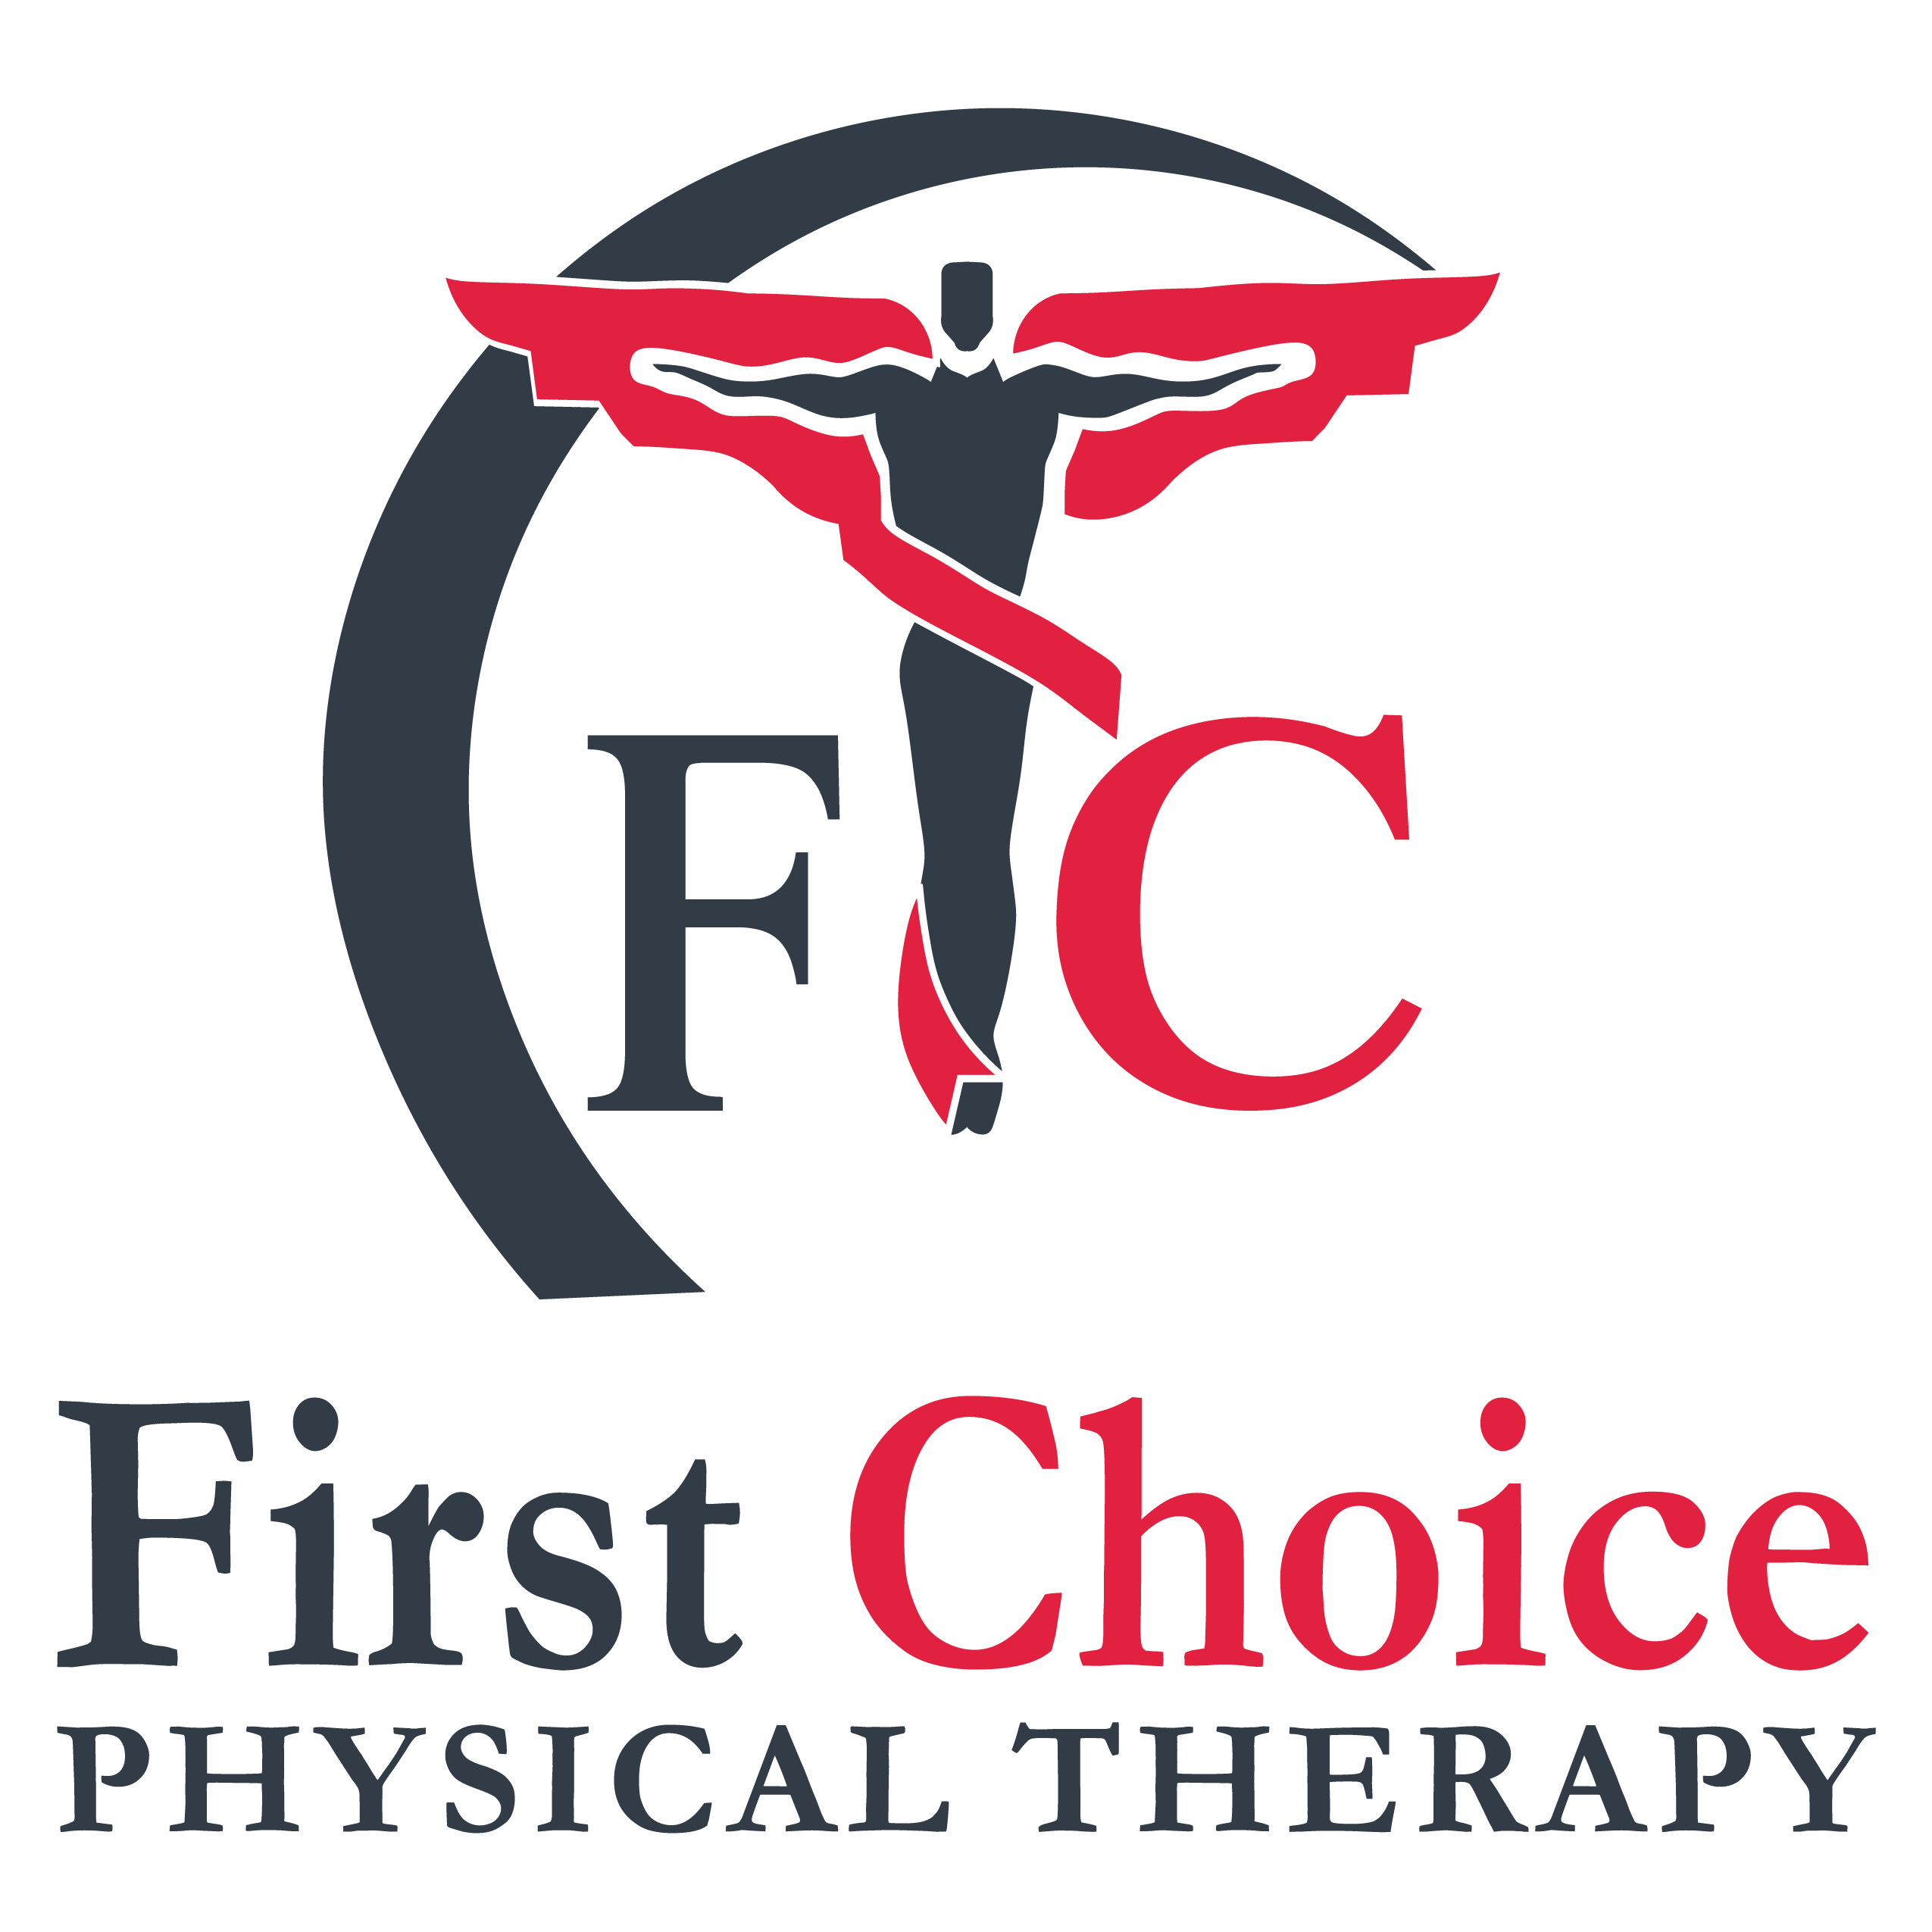 First Choice Physical Therapy - Panama City Beach, FL 32407 - (850)248-1601 | ShowMeLocal.com